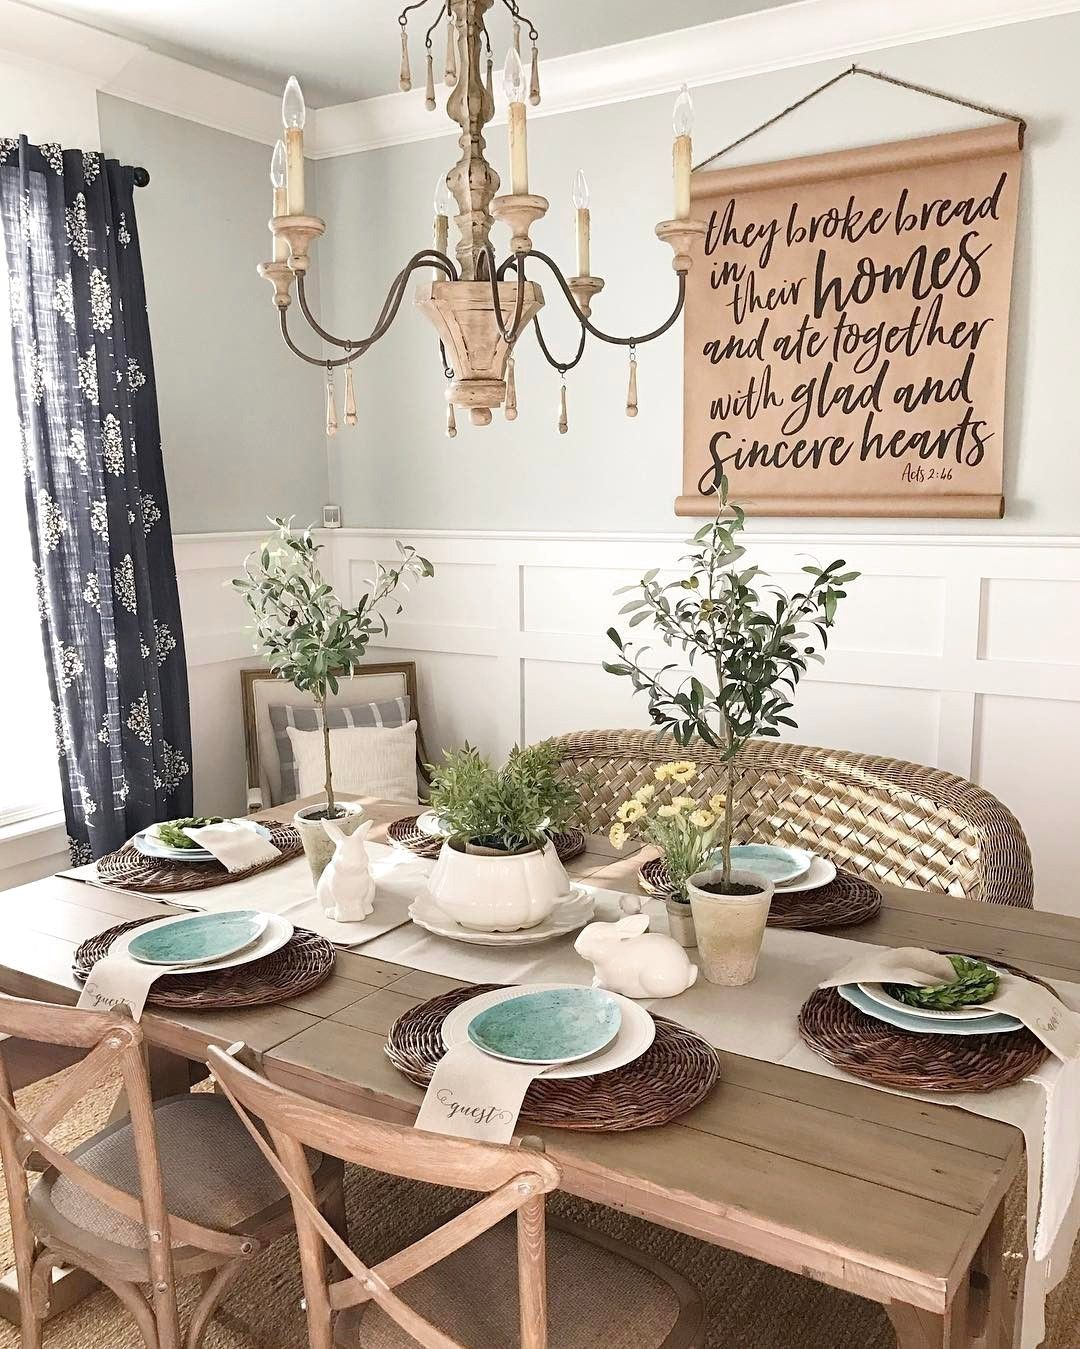 Small Space Dining Room Decoration Tips 17035: 50 COOL FARMHOUSE DINING ROOM DECOR IDEAS